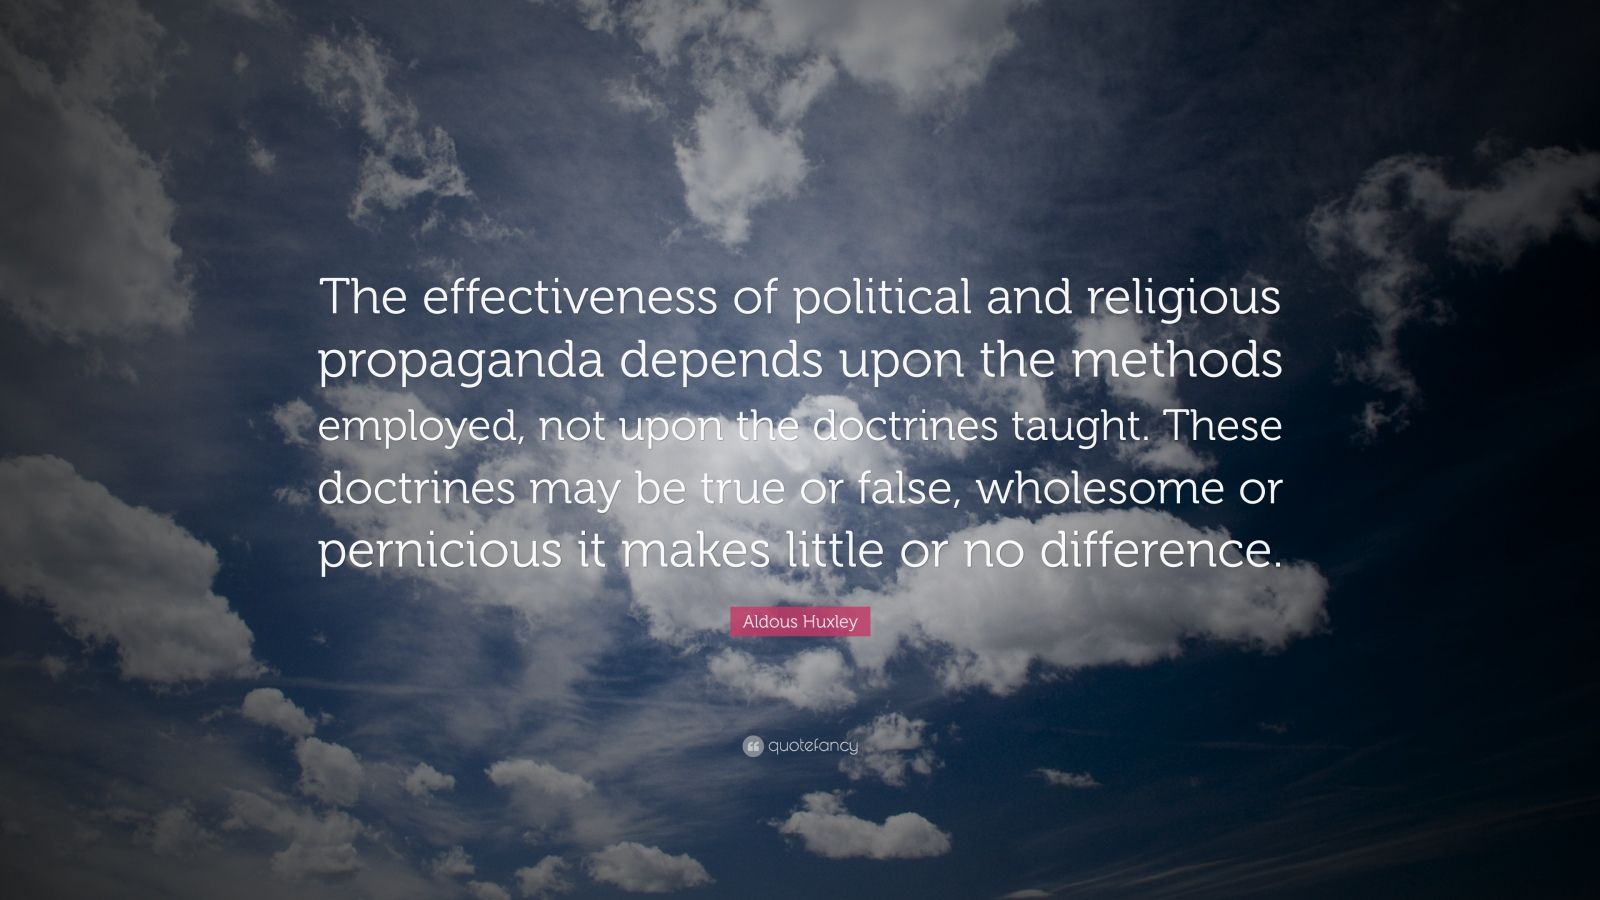 """Aldous Huxley Quote: """"The effectiveness of political and religious propaganda depends upon the methods employed, not upon the doctrines taught. These doctrines may be true or false, wholesome or pernicious it makes little or no difference."""""""